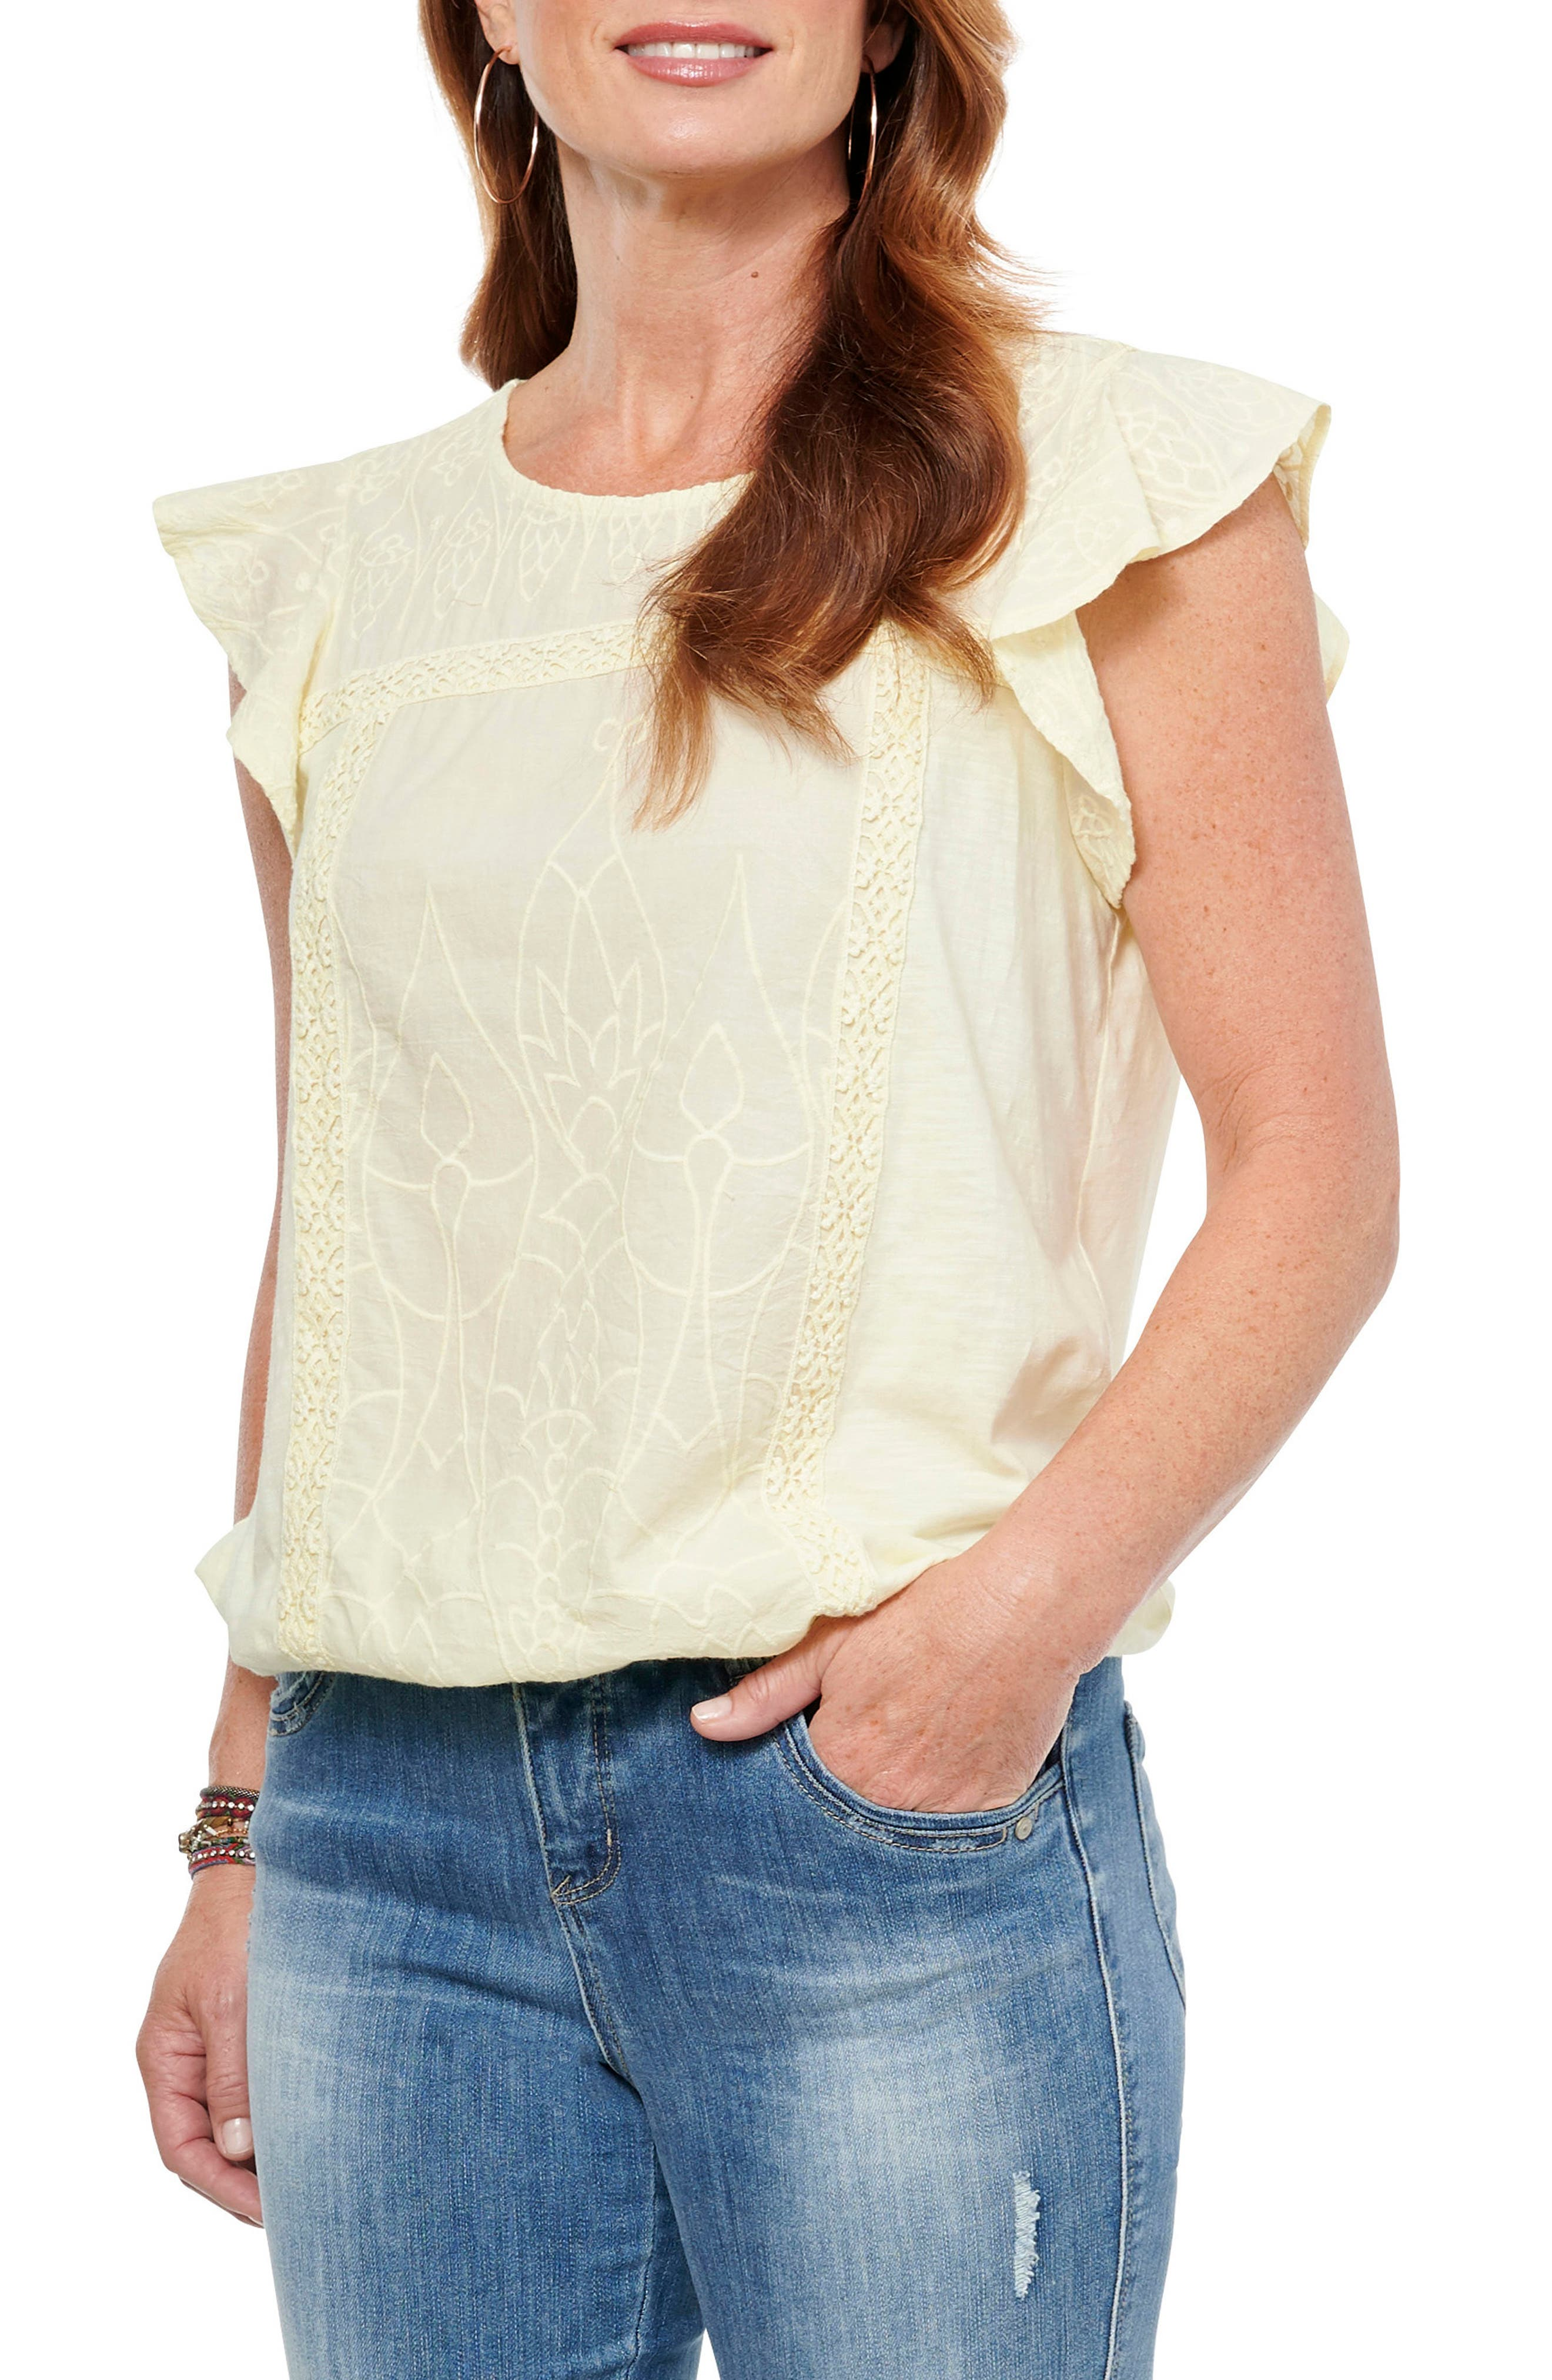 Turn on the charm in this flutter-sleeve top designed with a soft cotton-modal blend with lacy trim. Style Name: Wit & Wisdom Flutter Sleeve Blouse (Nordstrom Exclusive). Style Number: 6012659. Available in stores.